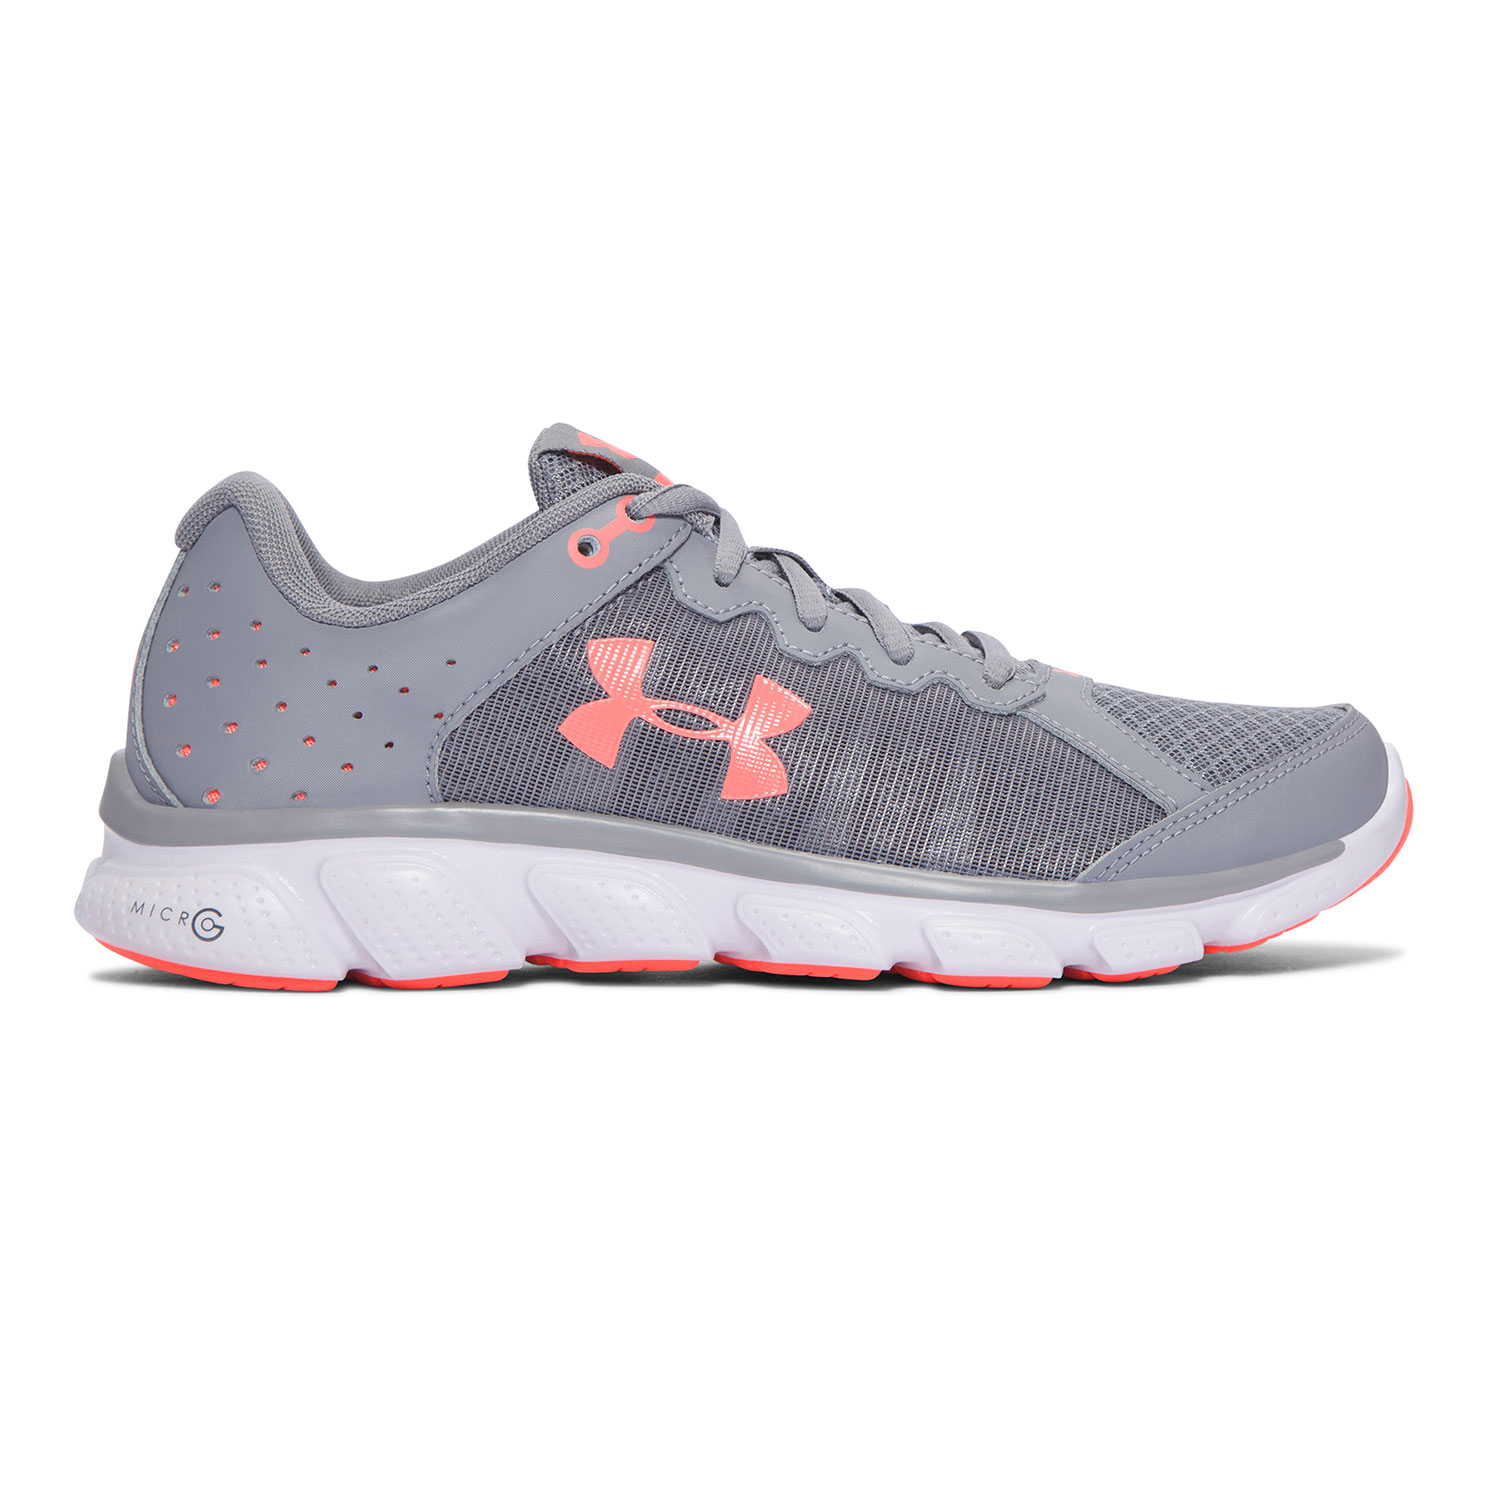 Under Armour Women's Micro G Assert 6 Running Shoe